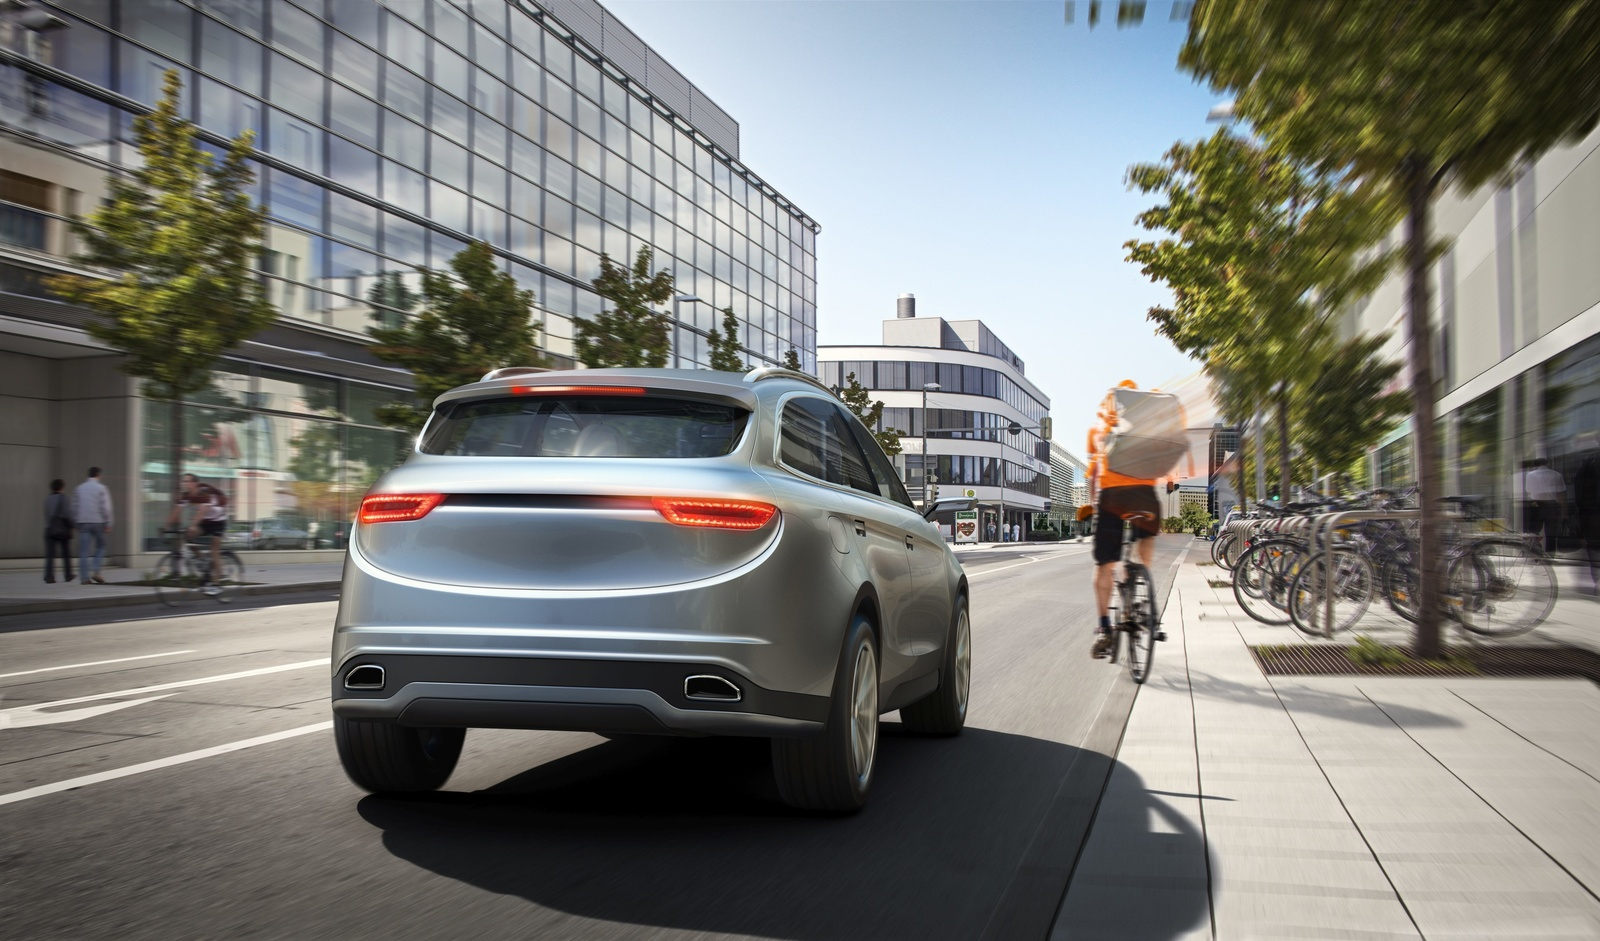 Better than a pair of eyes: Bosch camera with AI for driver assistance and automated driving